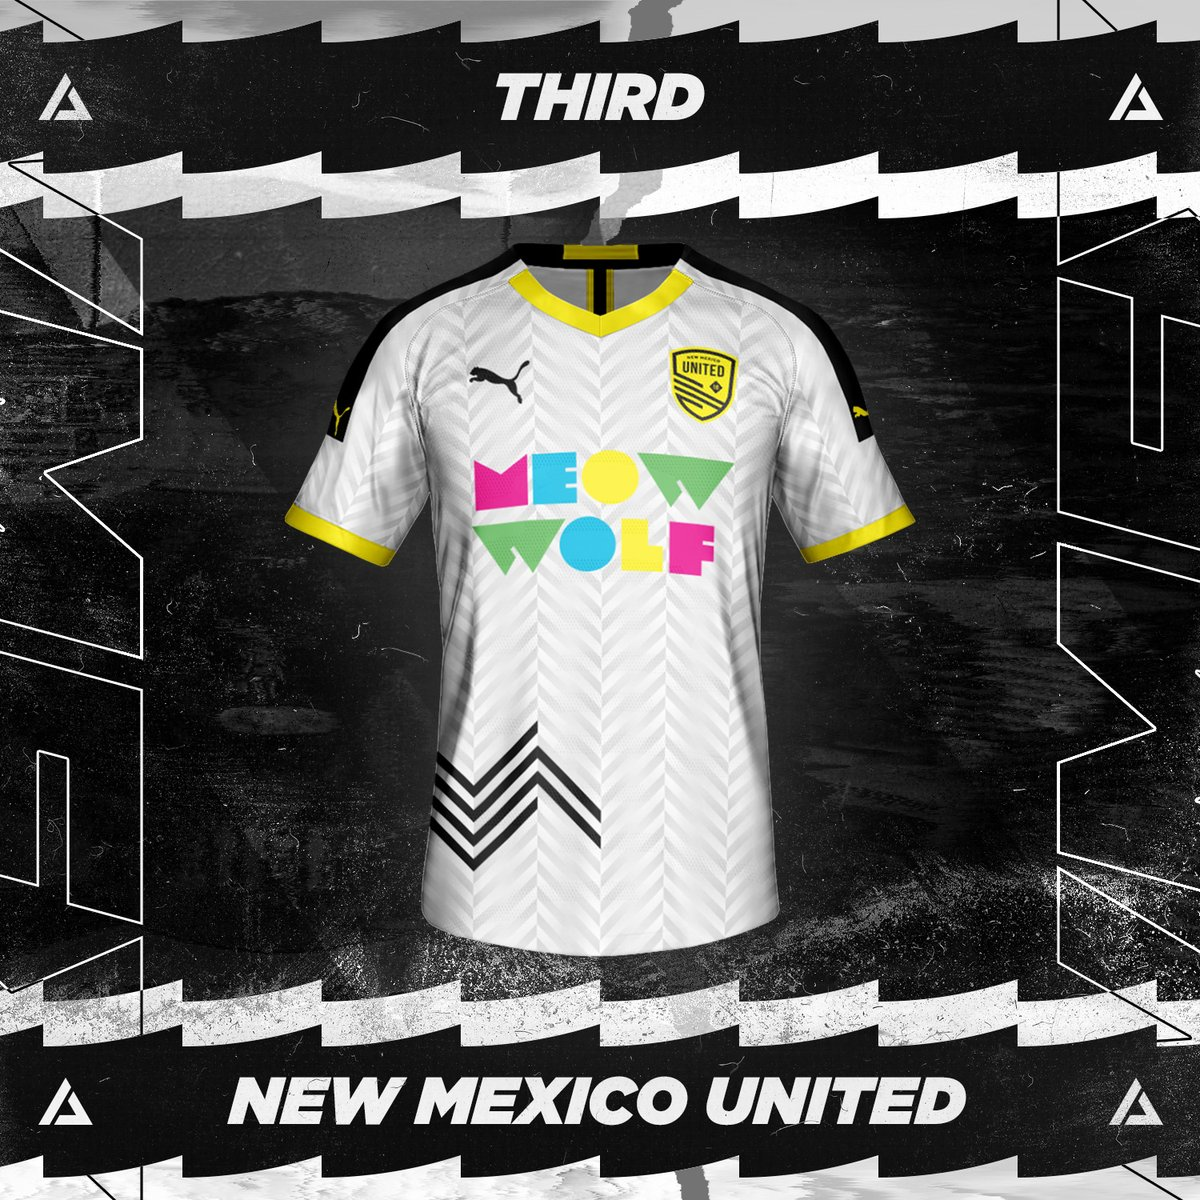 New Mexico United Third Kit Concept. ⁠ Rate 1-10! ⁠ #JPereira #NewMexicoUnited #NewMexico #NM #NMUnited #SomosUnidos #SomosFamilia #NMProud #NMStrong #NMTrue #Futbol #FantasyKit #ConceptKit #KitDesign #Soccer #Football #Jersey #GraphicDesign #PUMA #FIFA #Kit #USA https://t.co/iqaDpPuP6o